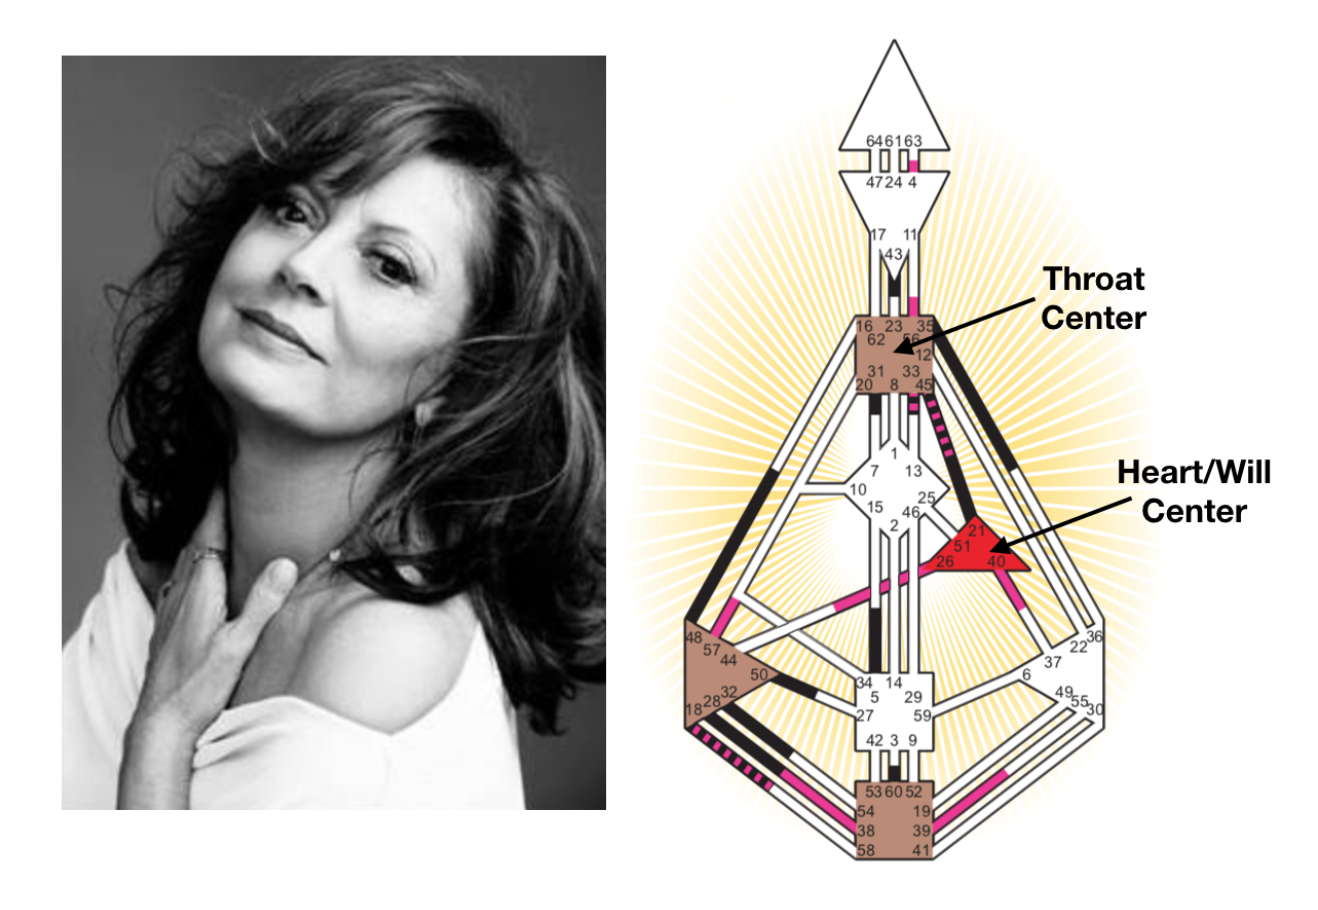 Susan Sarandon has a defined (closed) Throat Center & a defined (closed) Heart/Will Center.